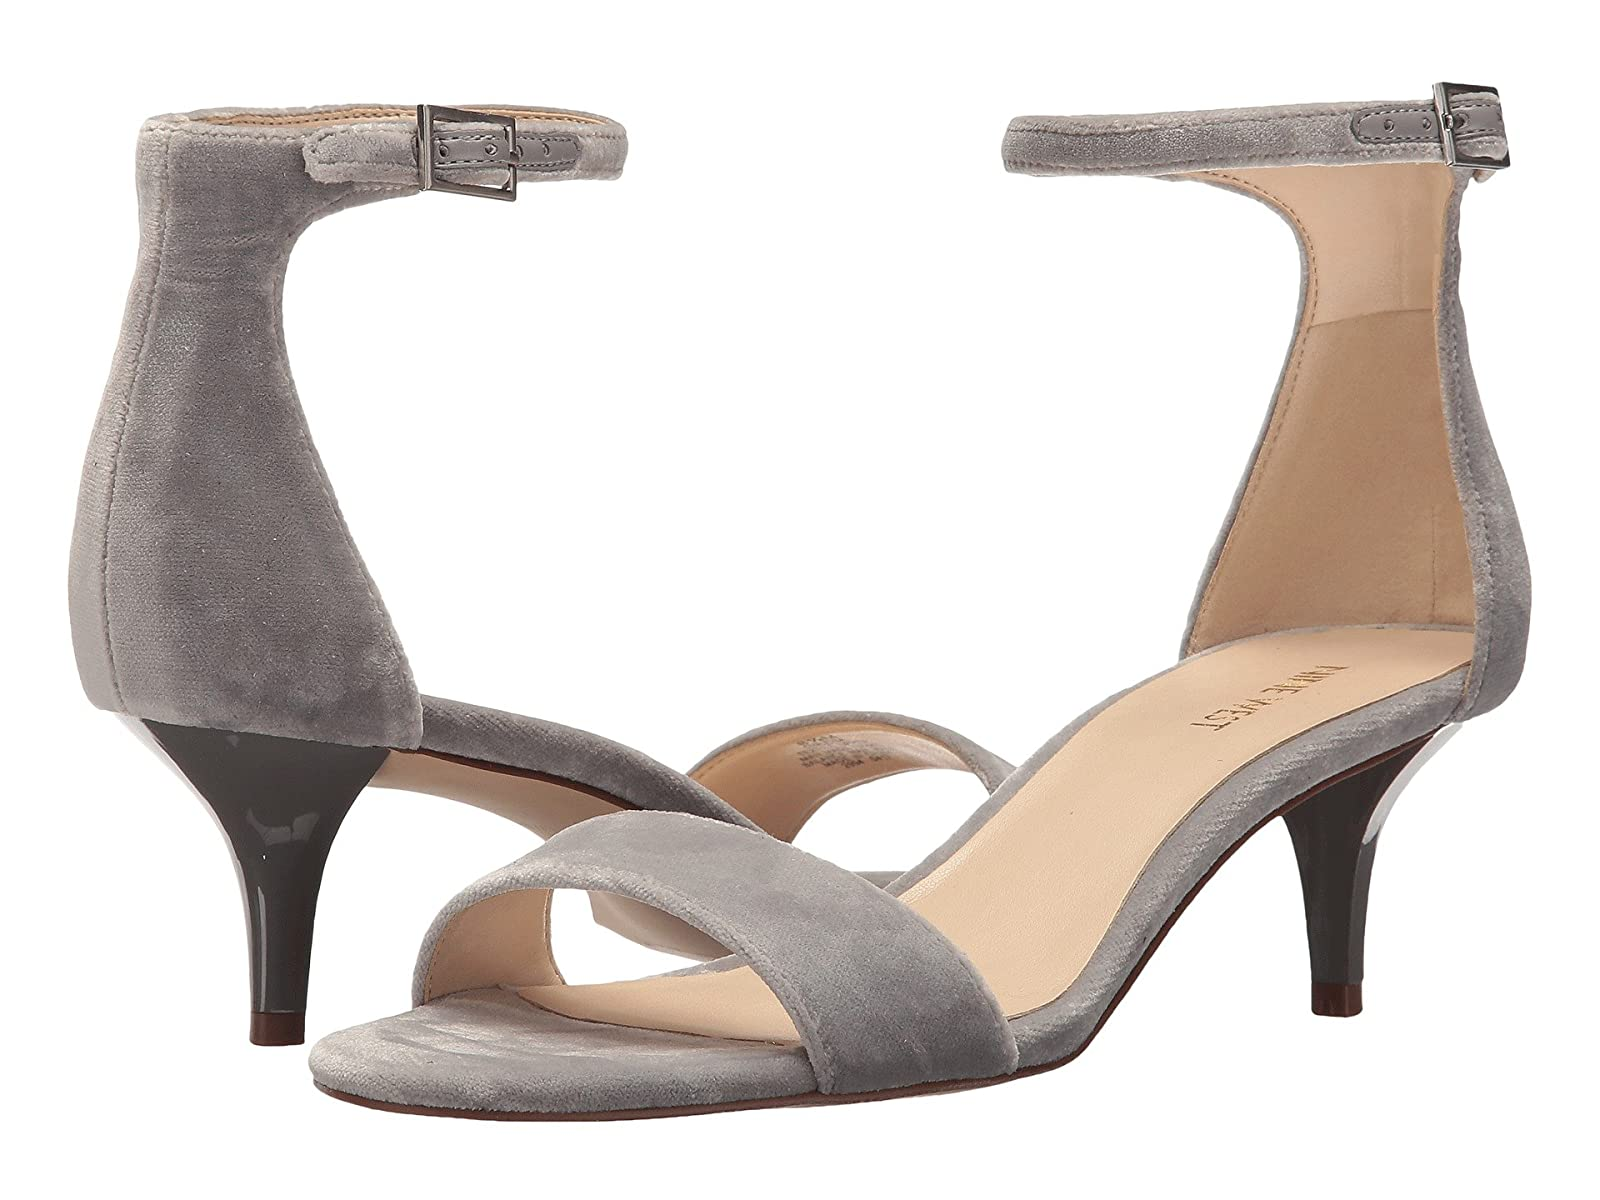 Nine West Leisa Heel SandalCheap and distinctive eye-catching shoes